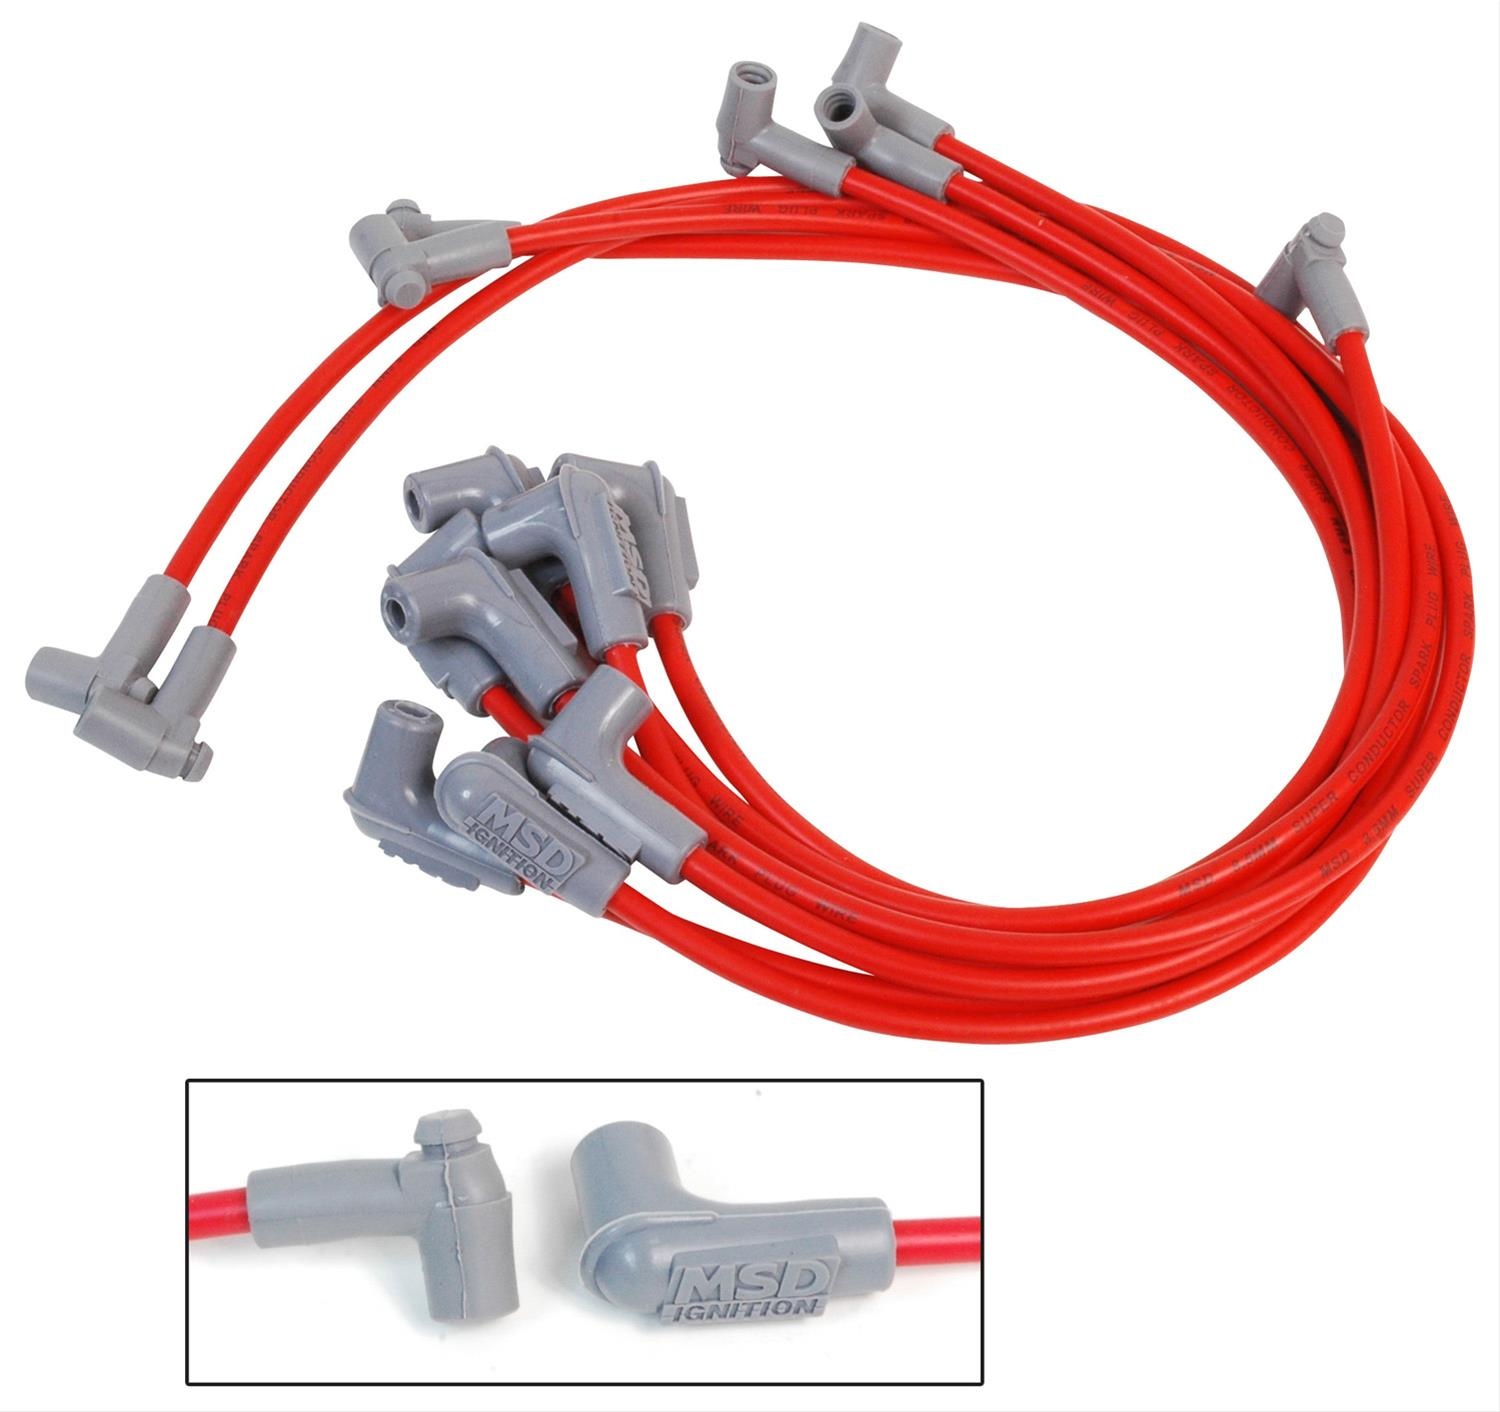 hight resolution of msd 8 5mm super conductor spark plug wire sets 31359 free shipping on orders over 99 at summit racing